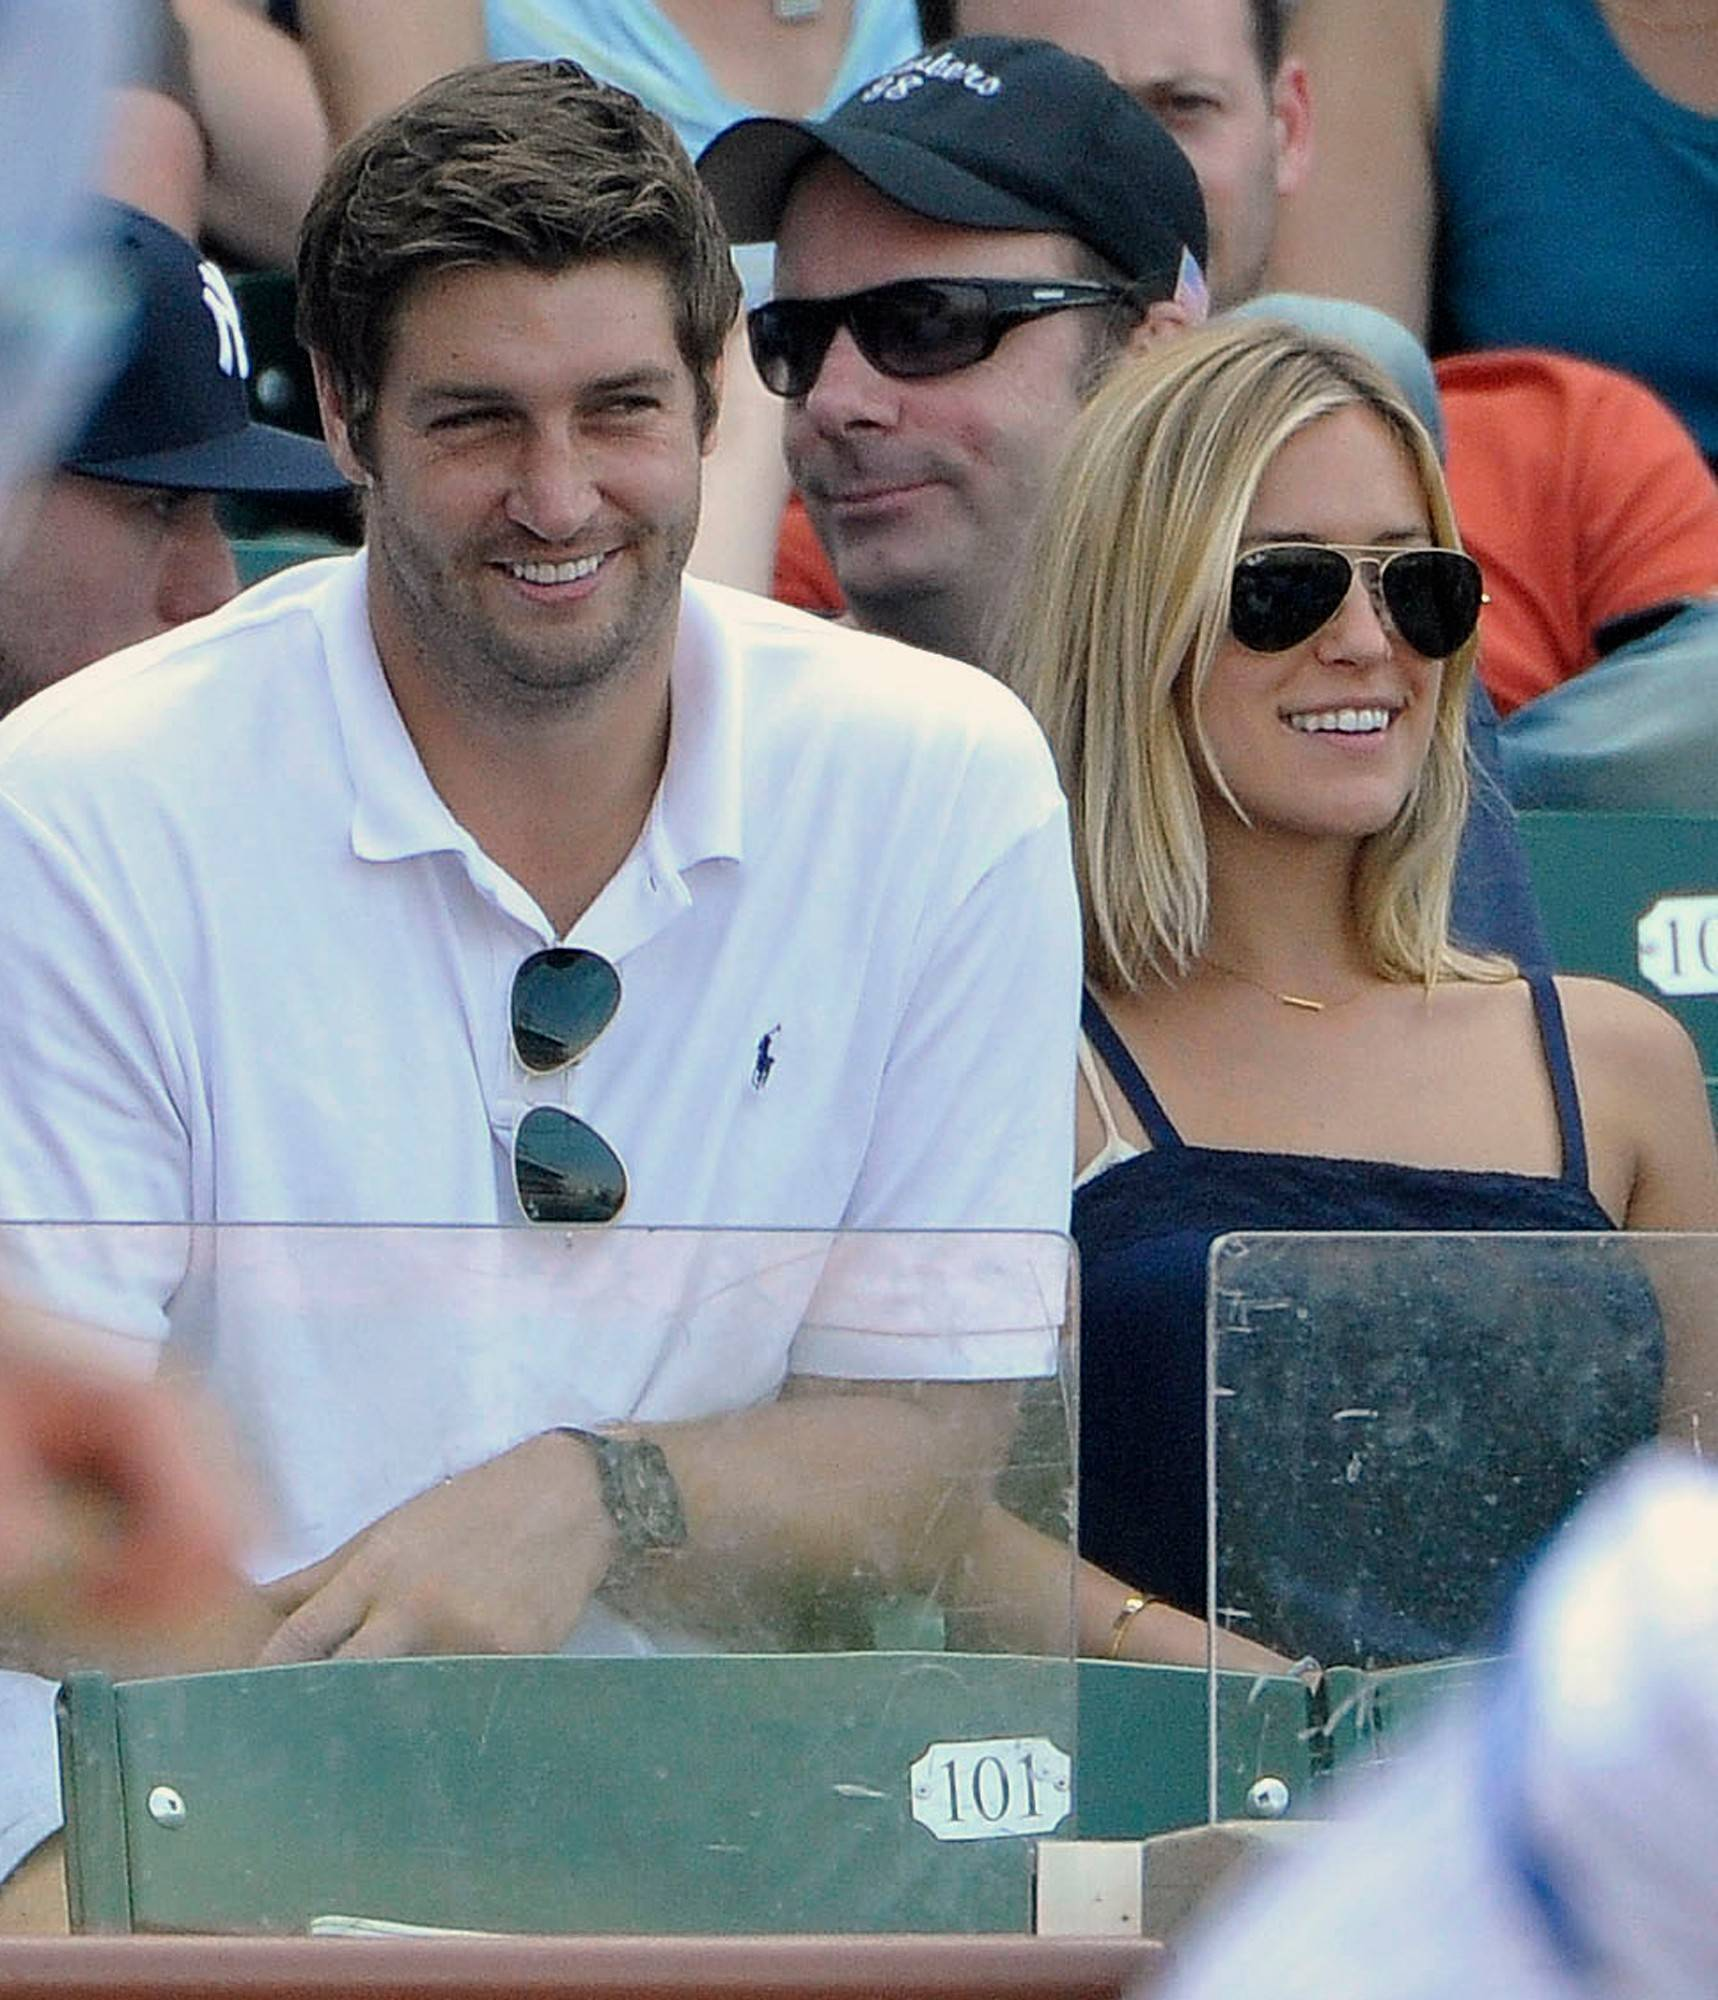 Cutler, Cavallari have second son